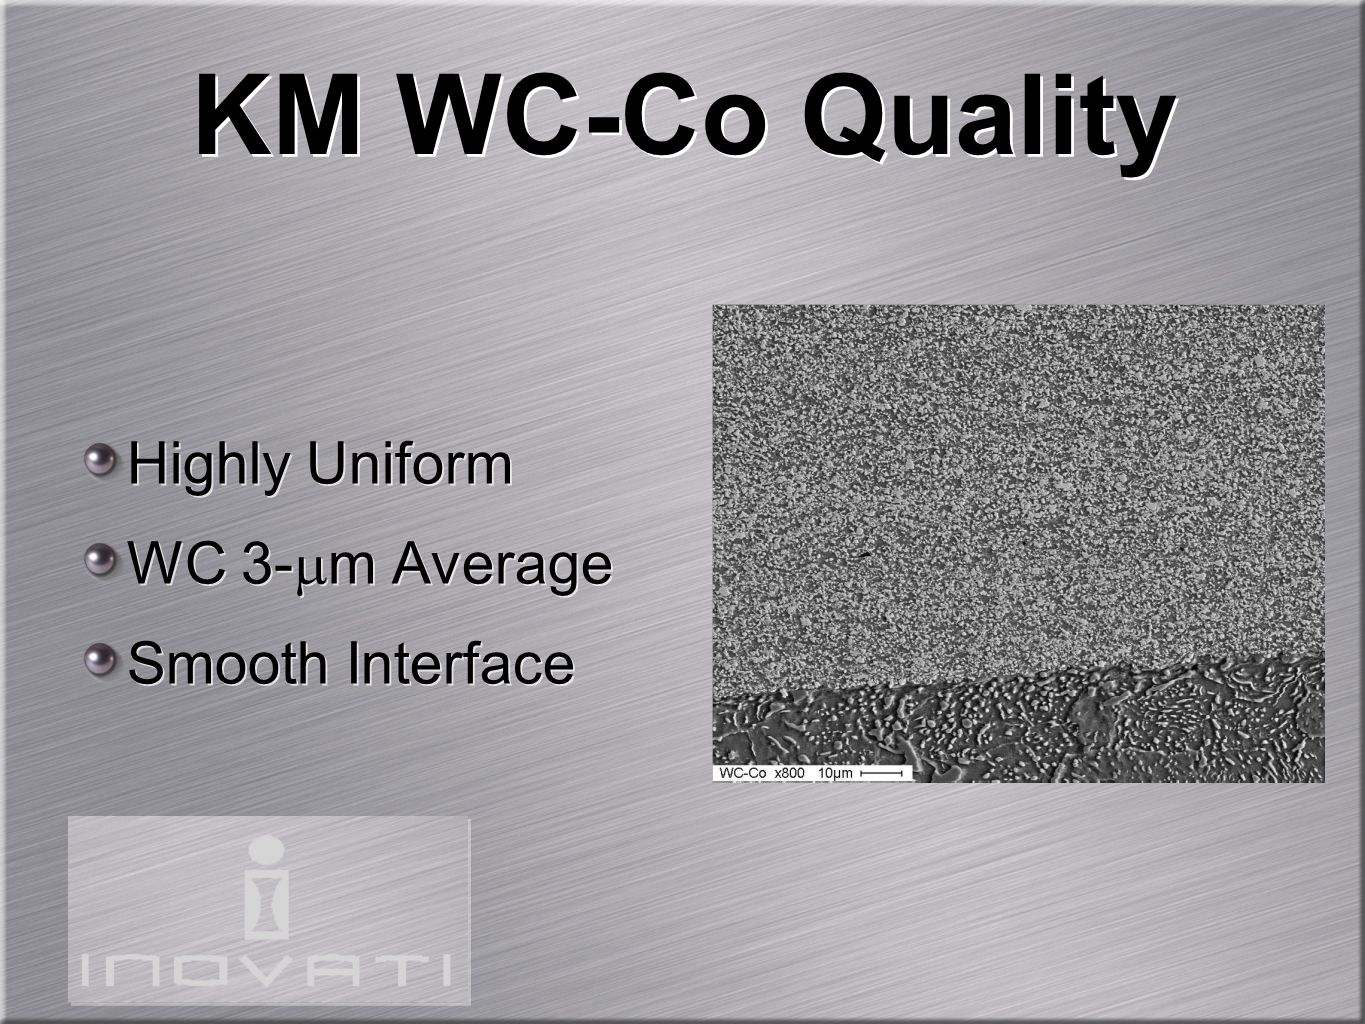 KM WC-Co Quality Highly Uniform WC 3- m Average Smooth Interface Highly Uniform WC 3- m Average Smooth Interface